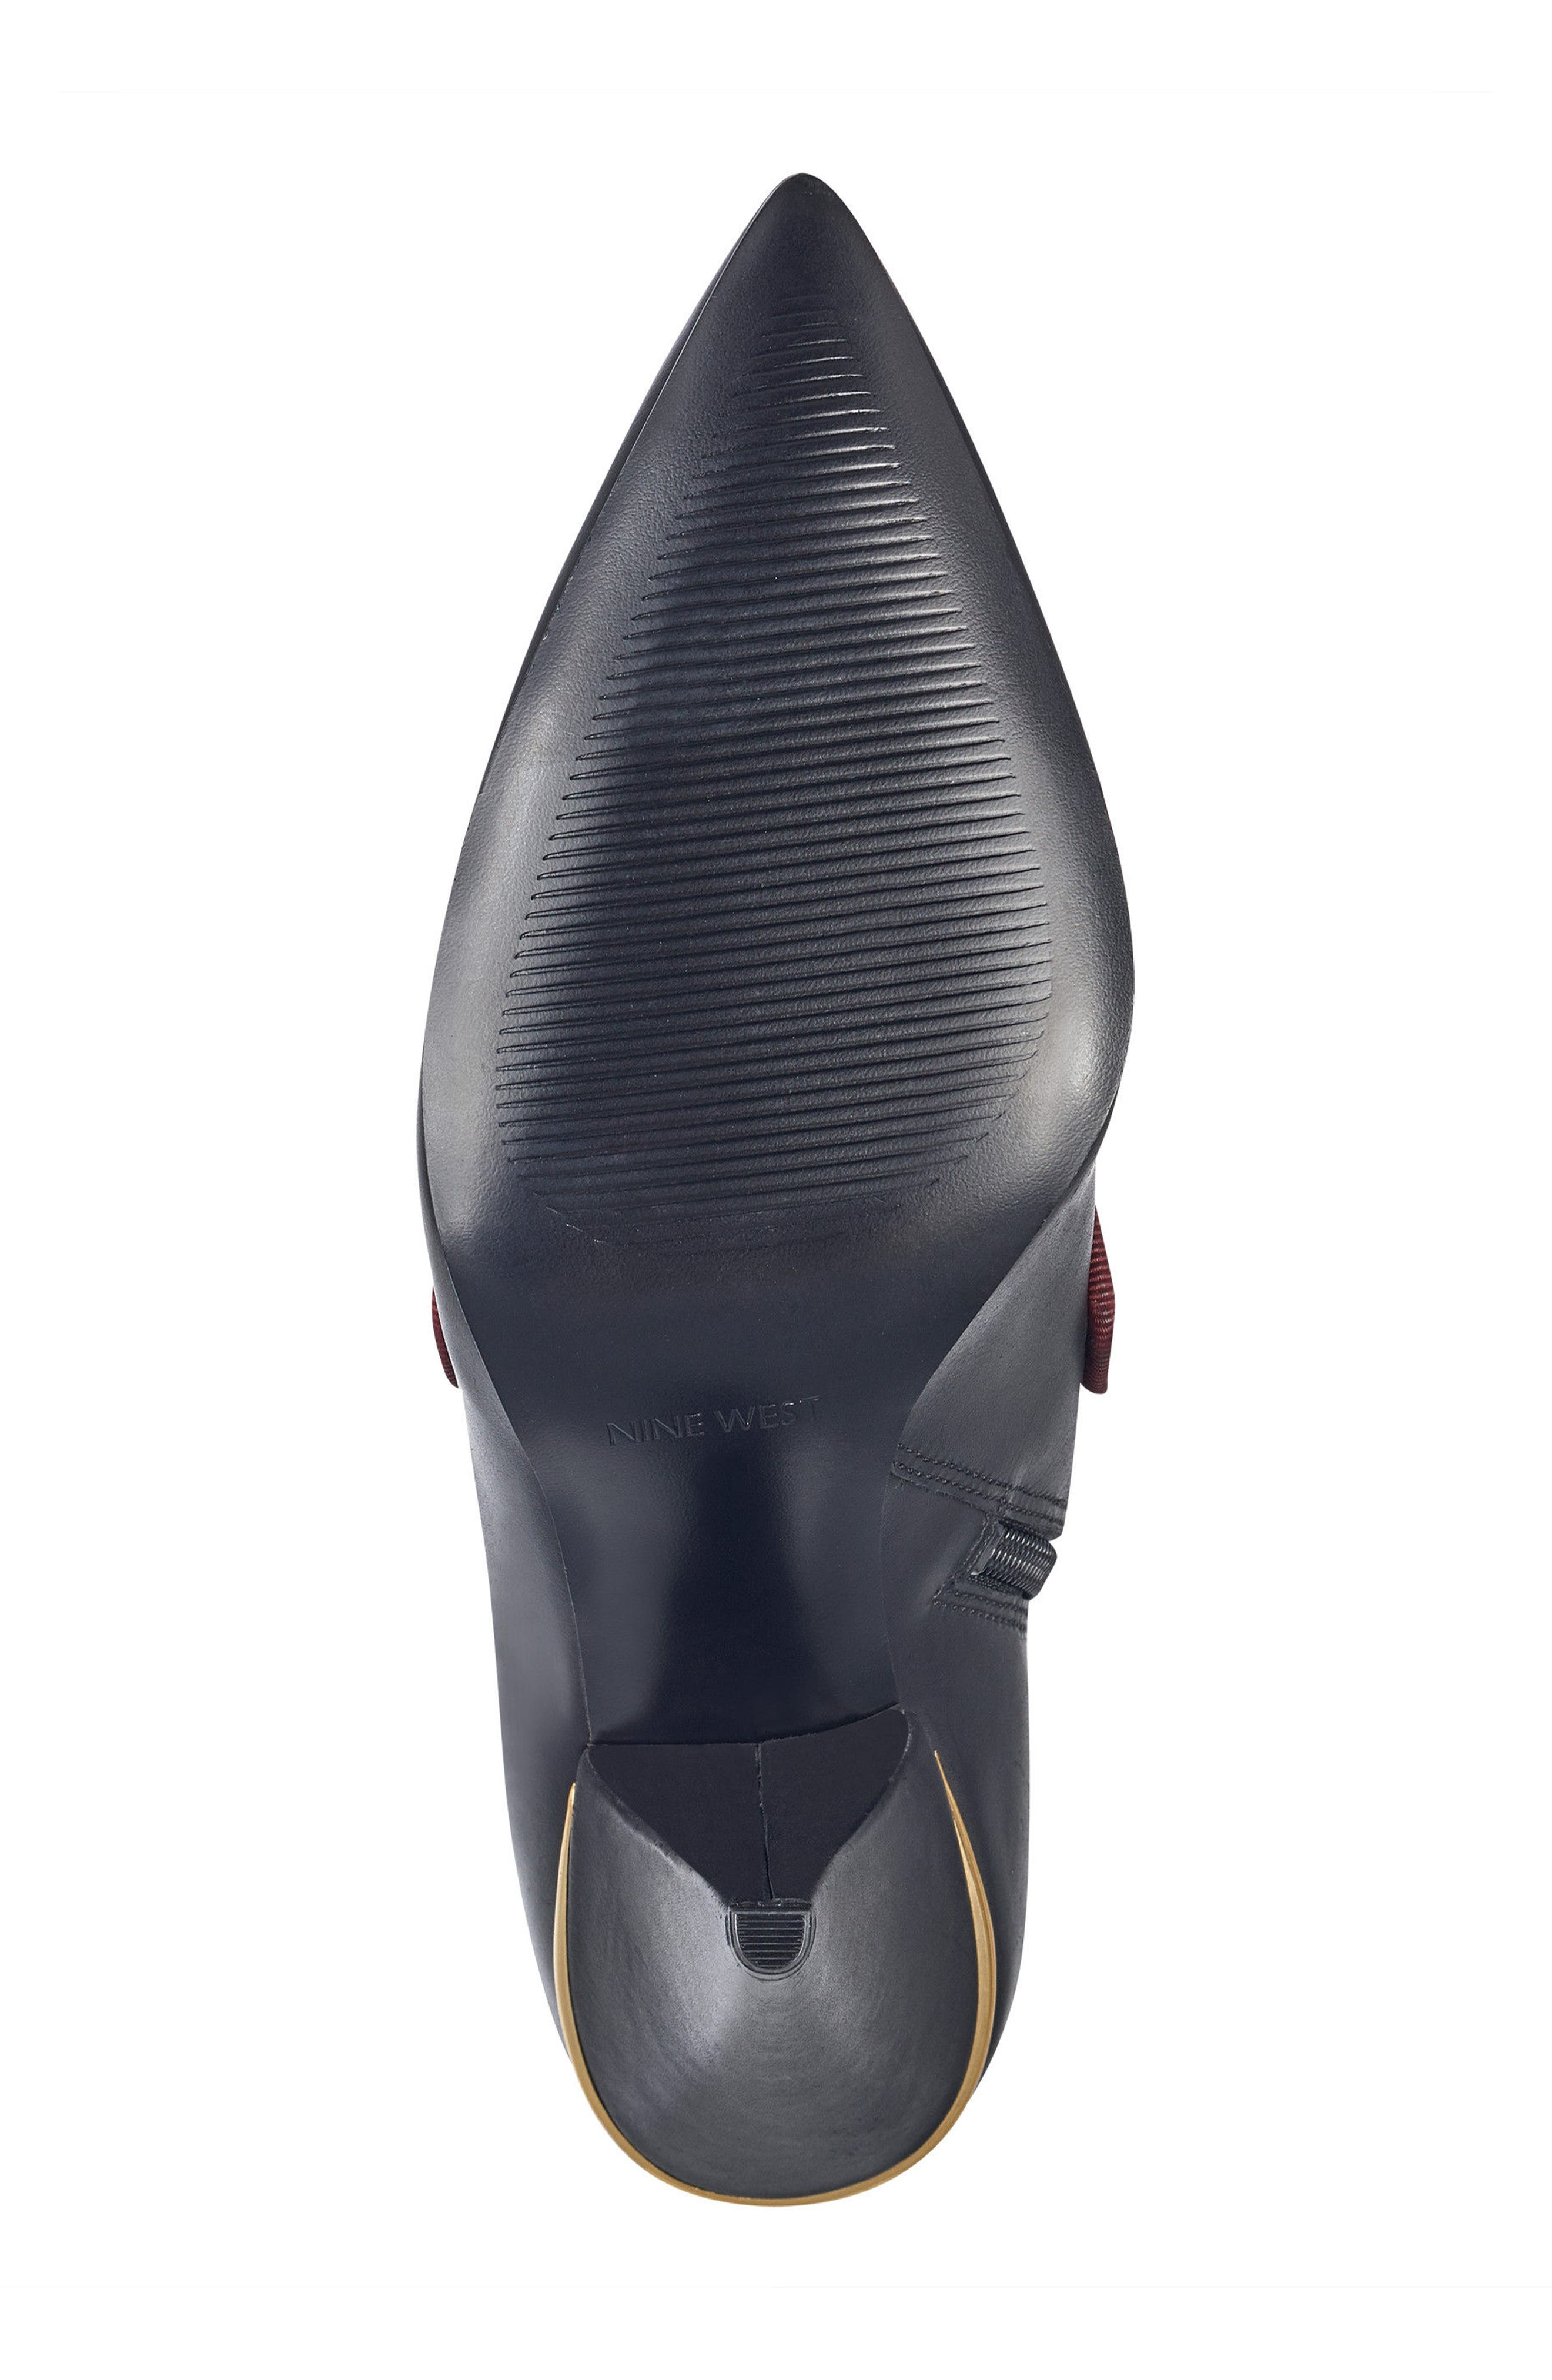 Westham Pointy Toe Bootie,                             Alternate thumbnail 6, color,                             Black/ Wine Leather